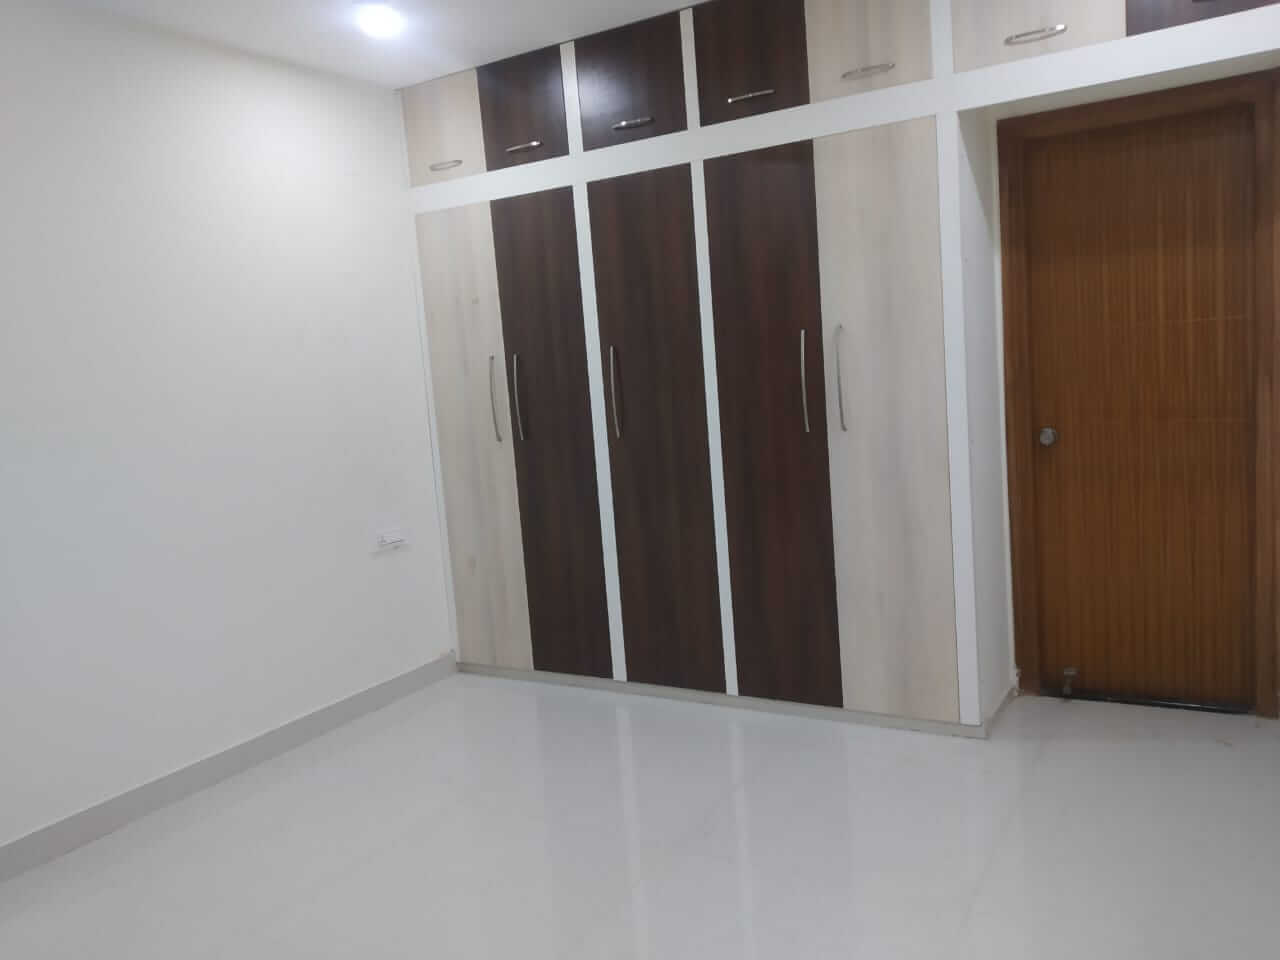 3 bhk east facing flat with all basic amenities like water, lift, power back up etc, 1530 sqft on 5th floor